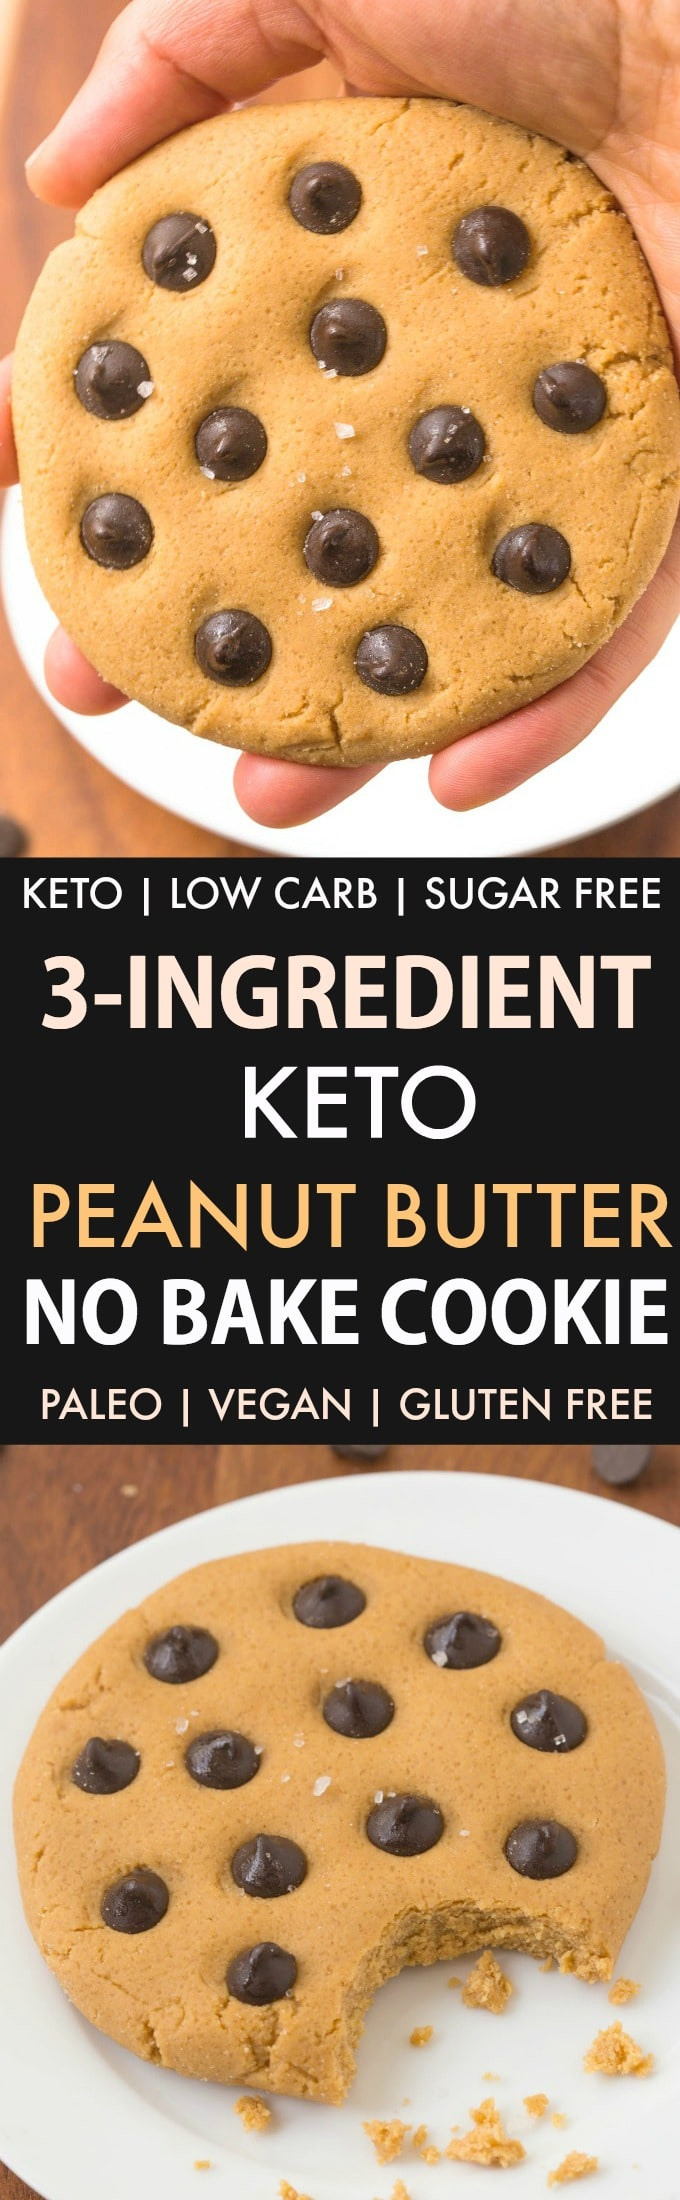 3-Ingredient Keto Peanut Butter No Bake Cookies in a collage